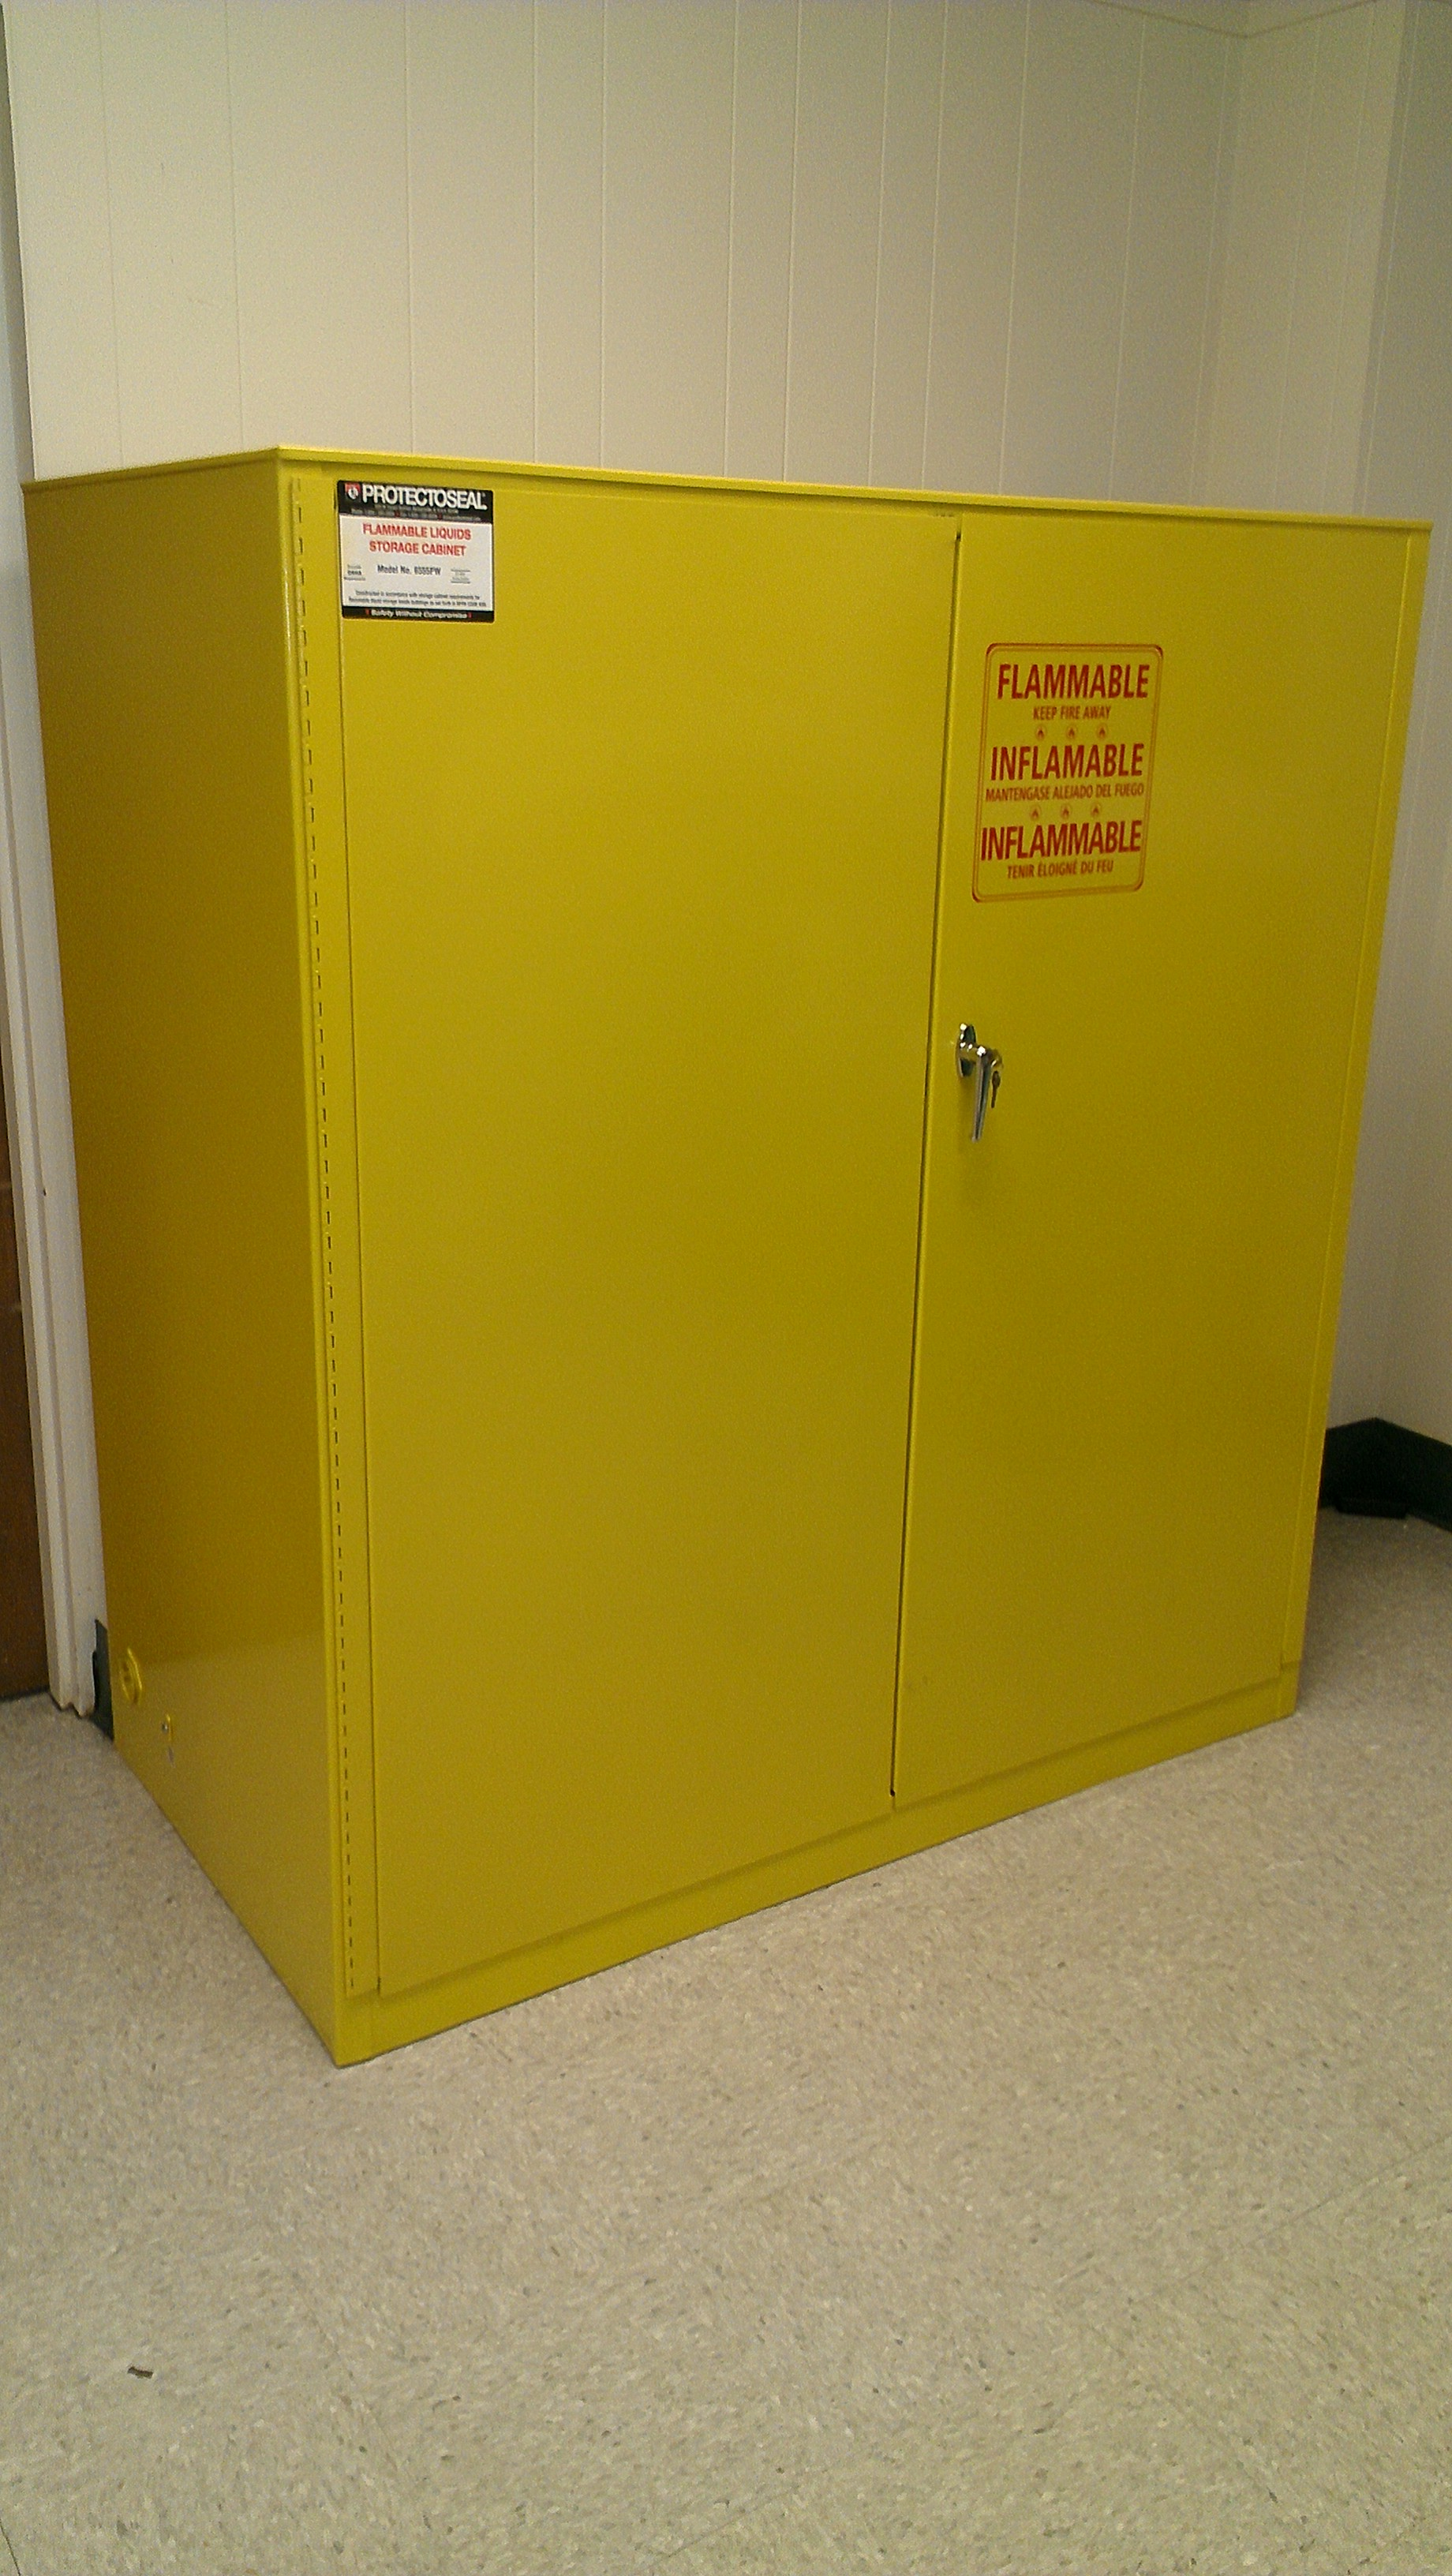 New Amp Used Liquid Flammable Fire Safety Cabinets